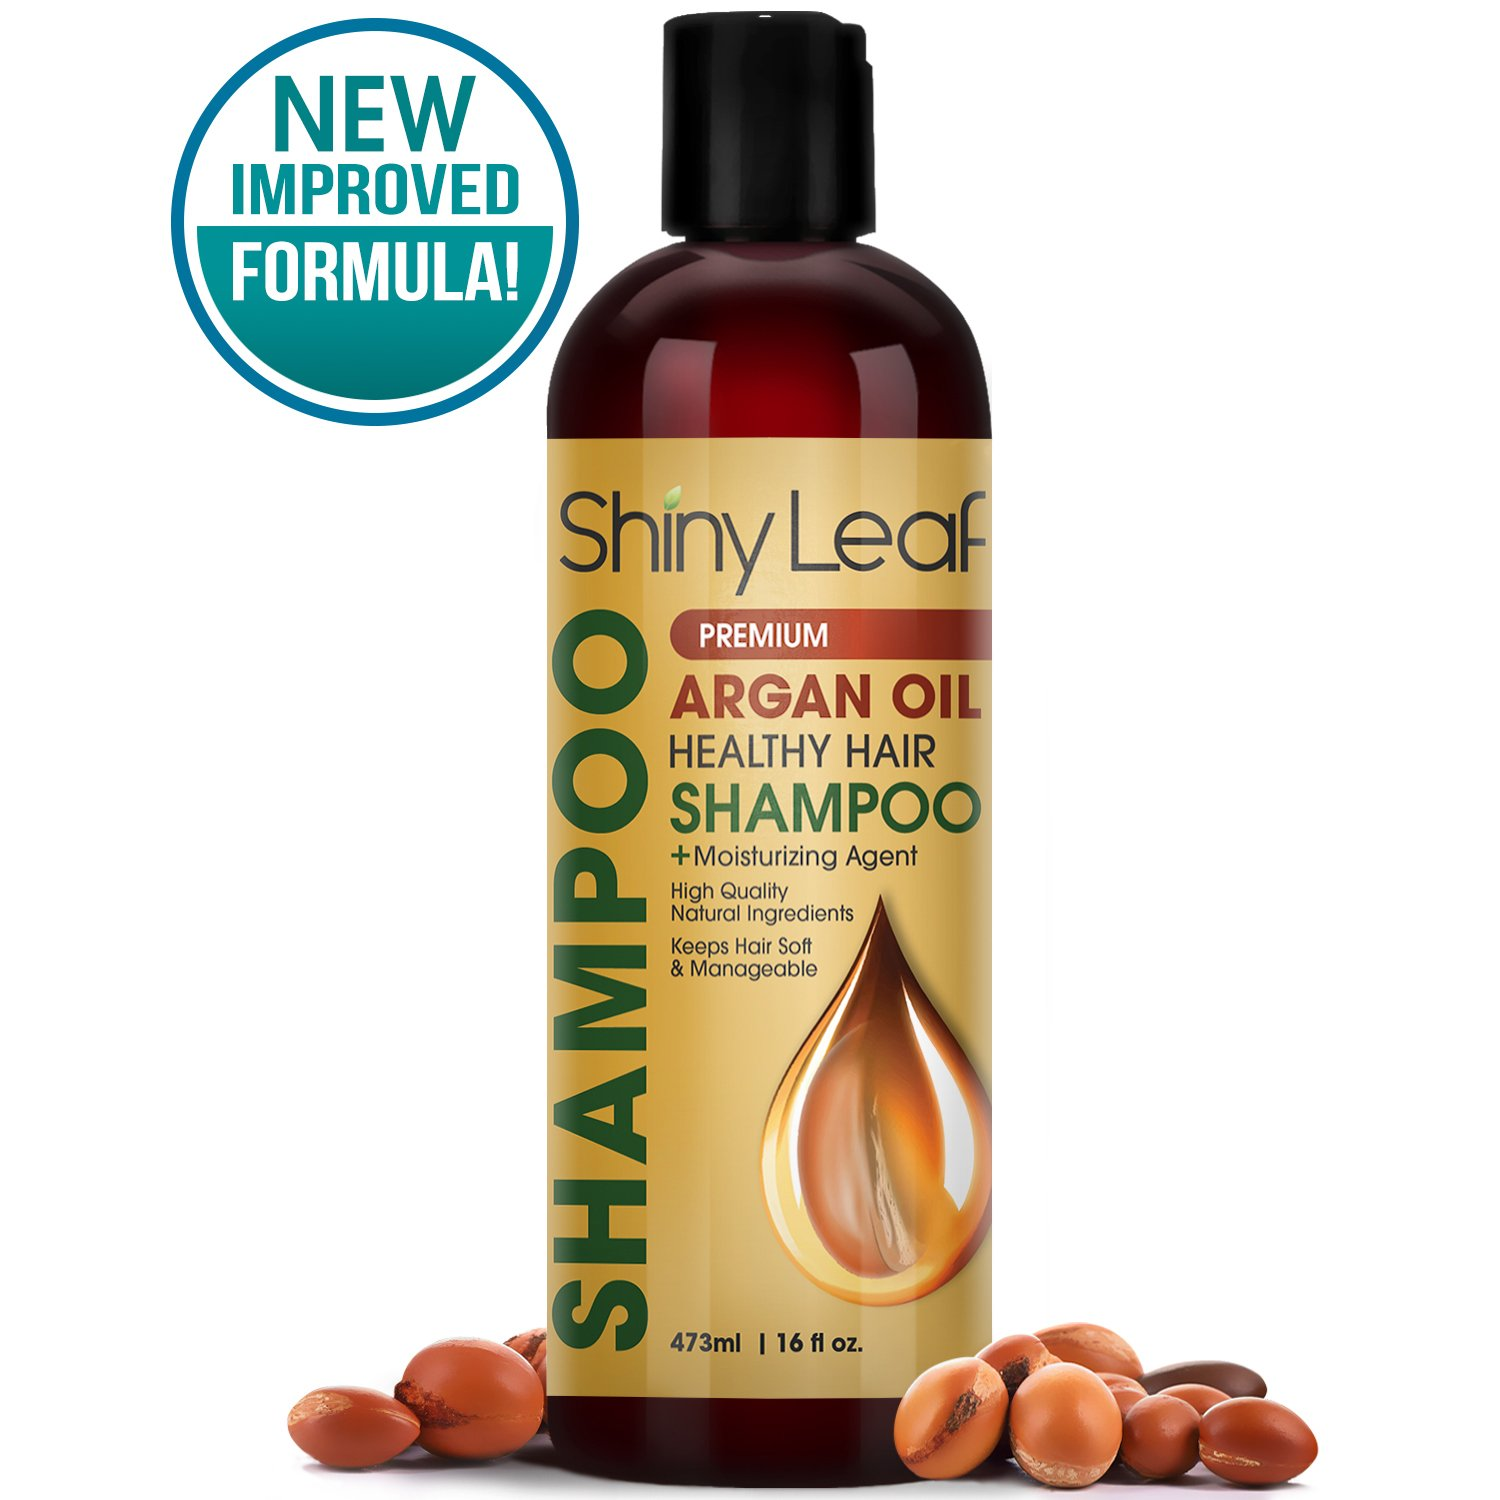 Shiny Leaf Argan Oil Healthy Hair Shampoo – Premium Anti Hair Loss Shampoo Treatment With Argan Oil, Thickens, Strengthens All Hair Types, Leaves Hair Smooth, Huge 16 oz (473 ml) Bottle